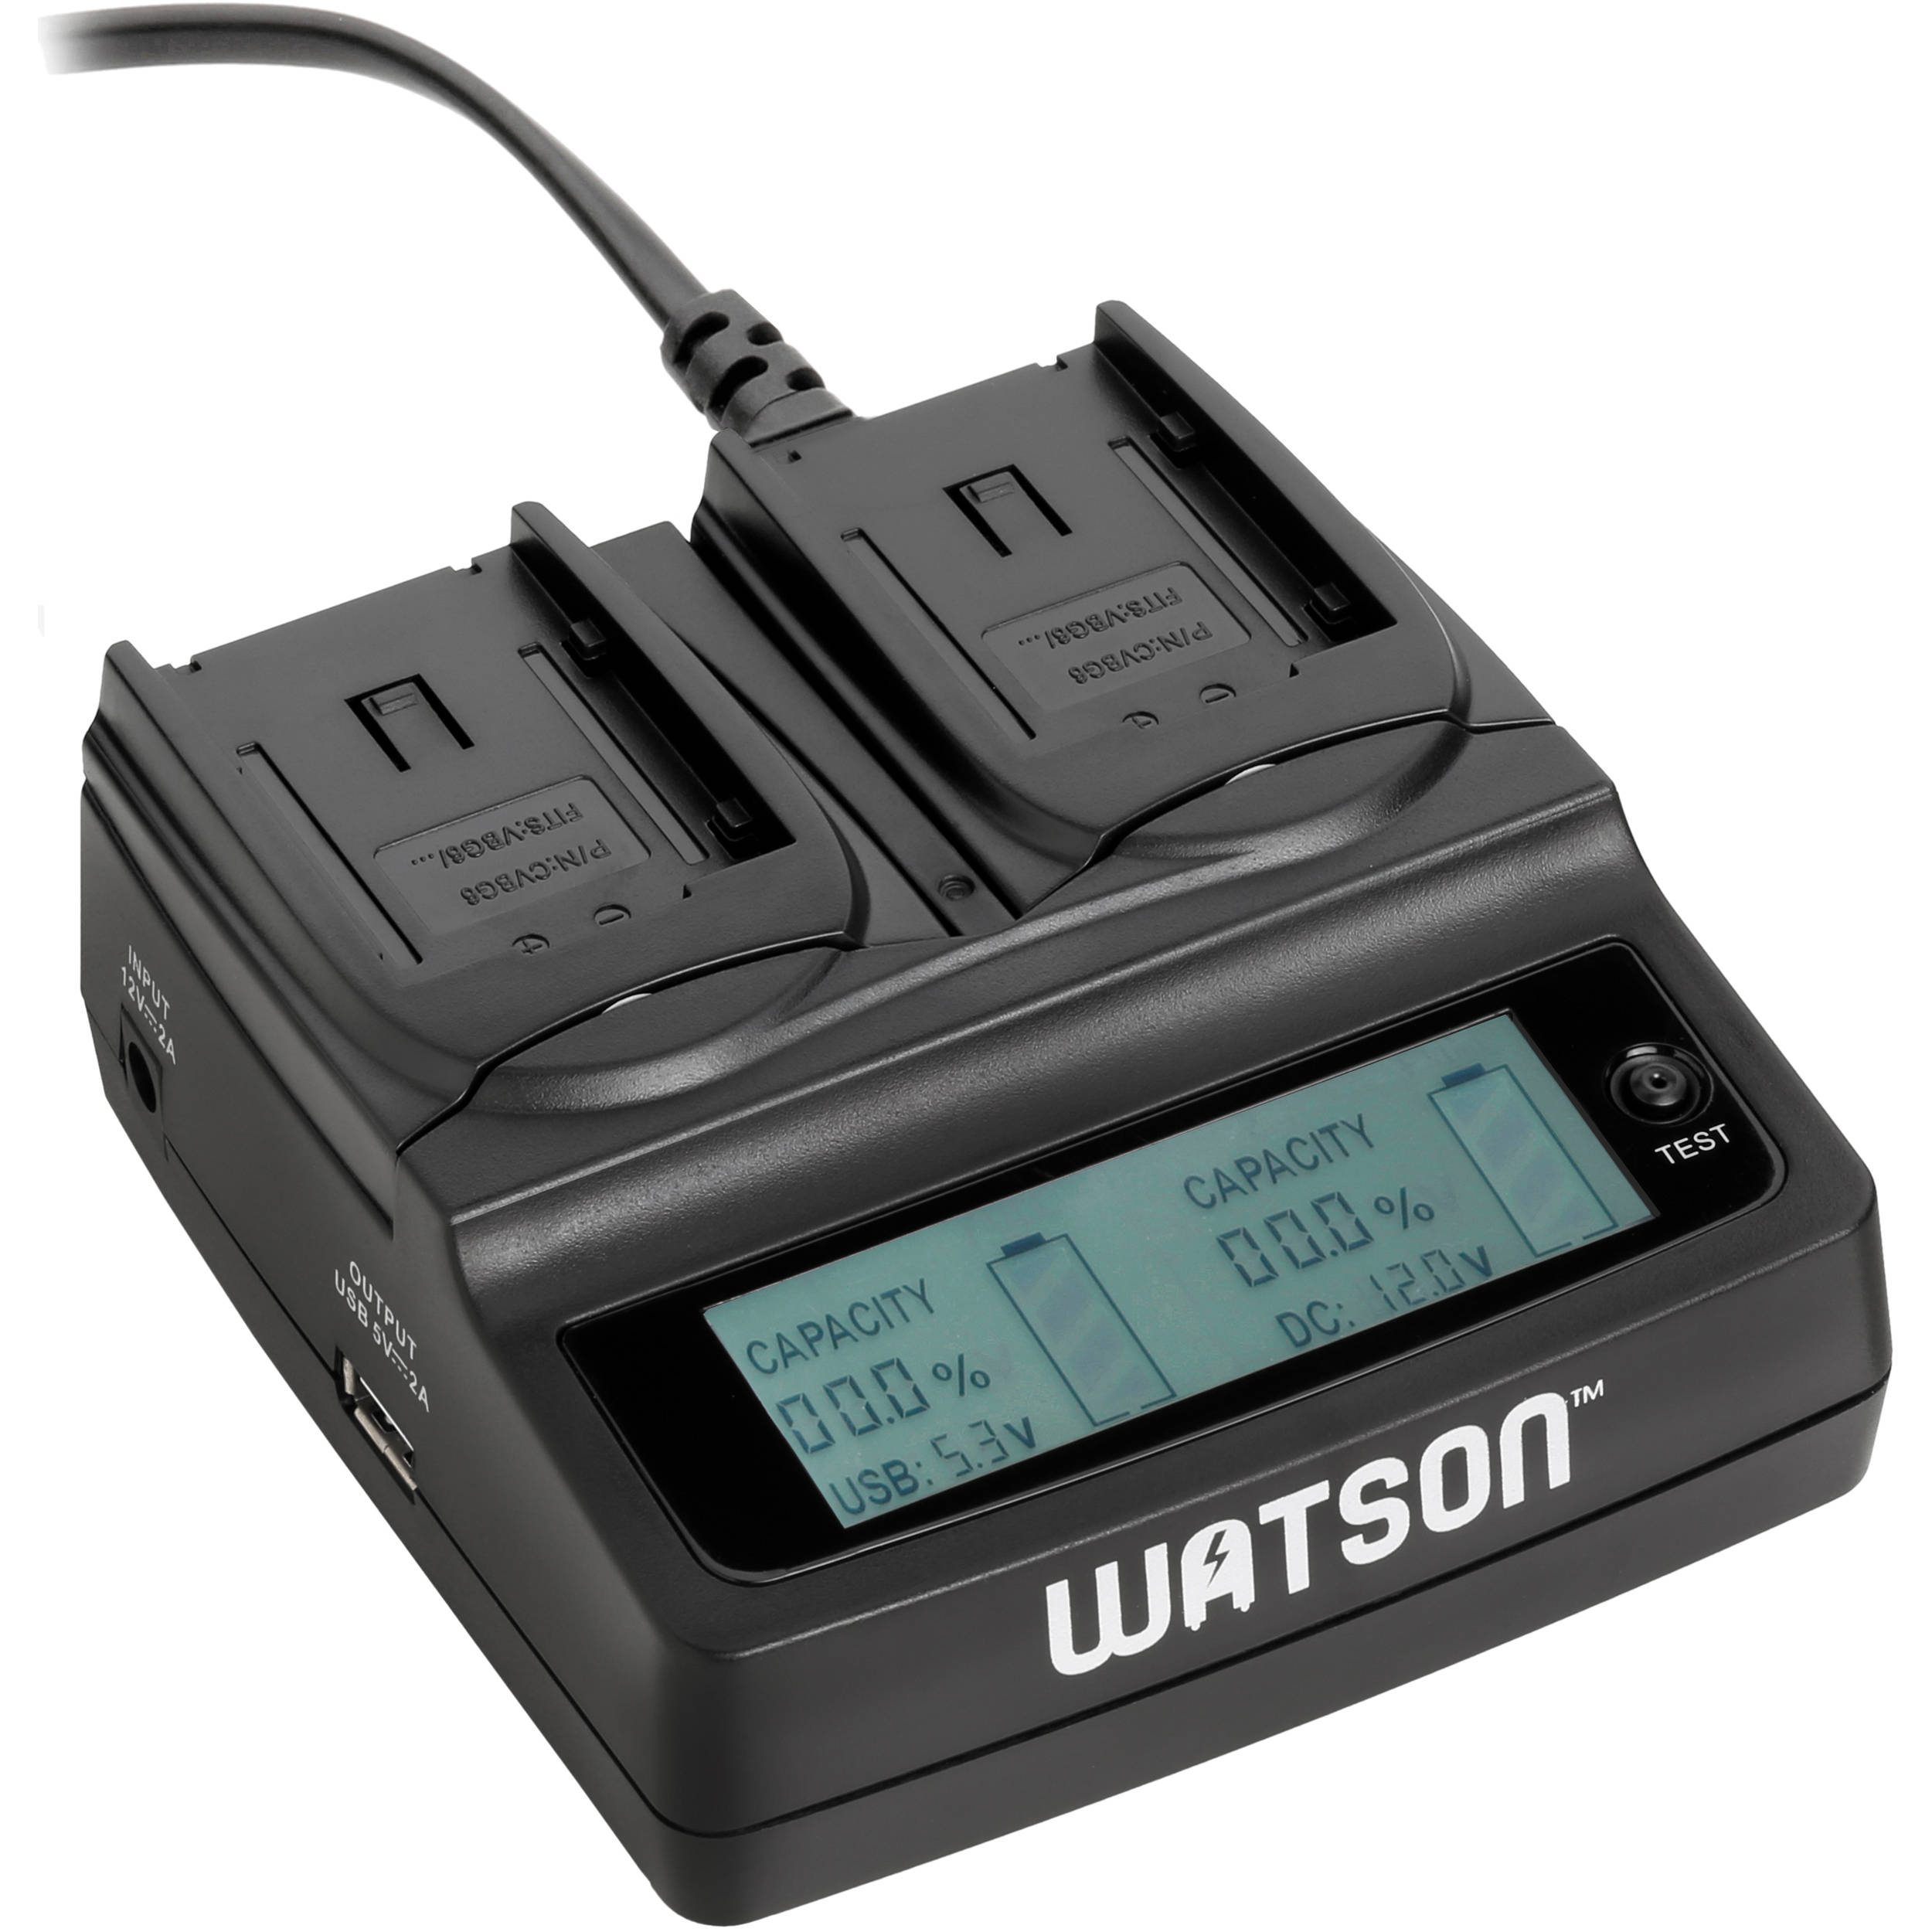 Https C Product 1039137 Reg Modem Bolt Lcd Slim Unlock All Gsm Watson D 3629 Duo Charger For 908189